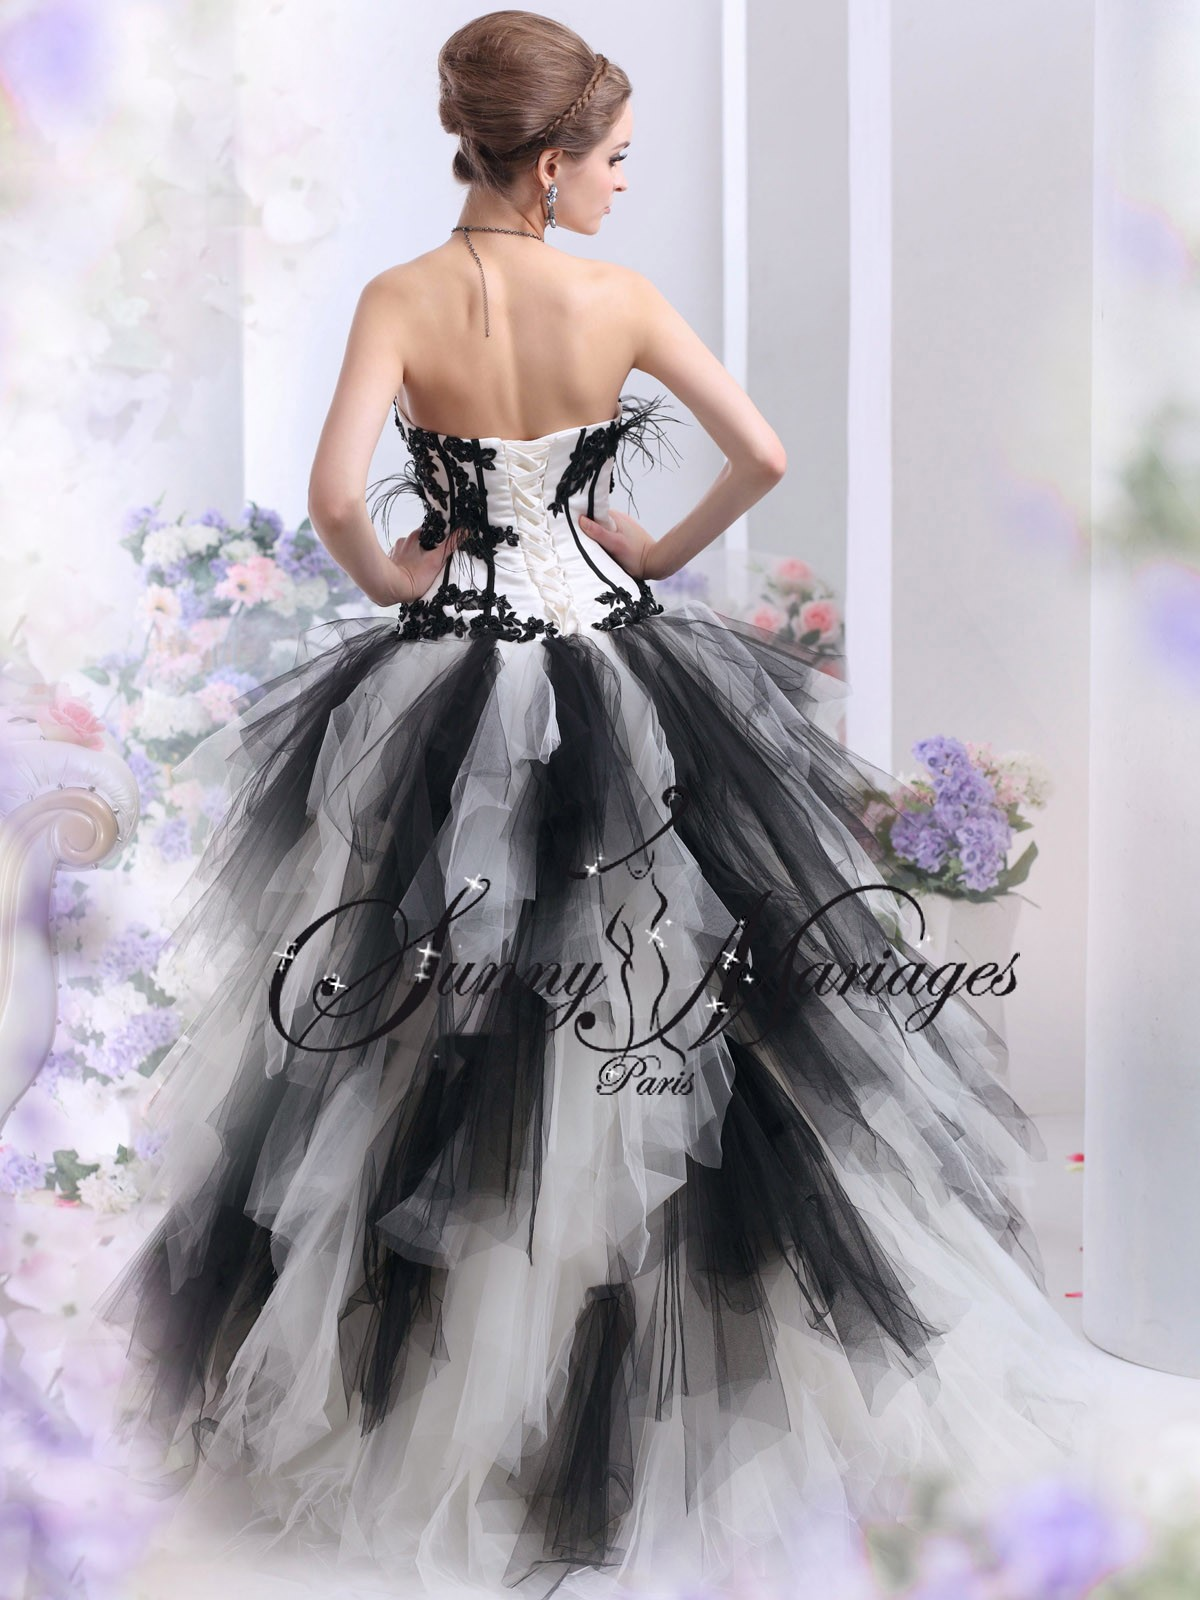 Robe De Mariée Noir Et Blanche Pictures to pin on Pinterest